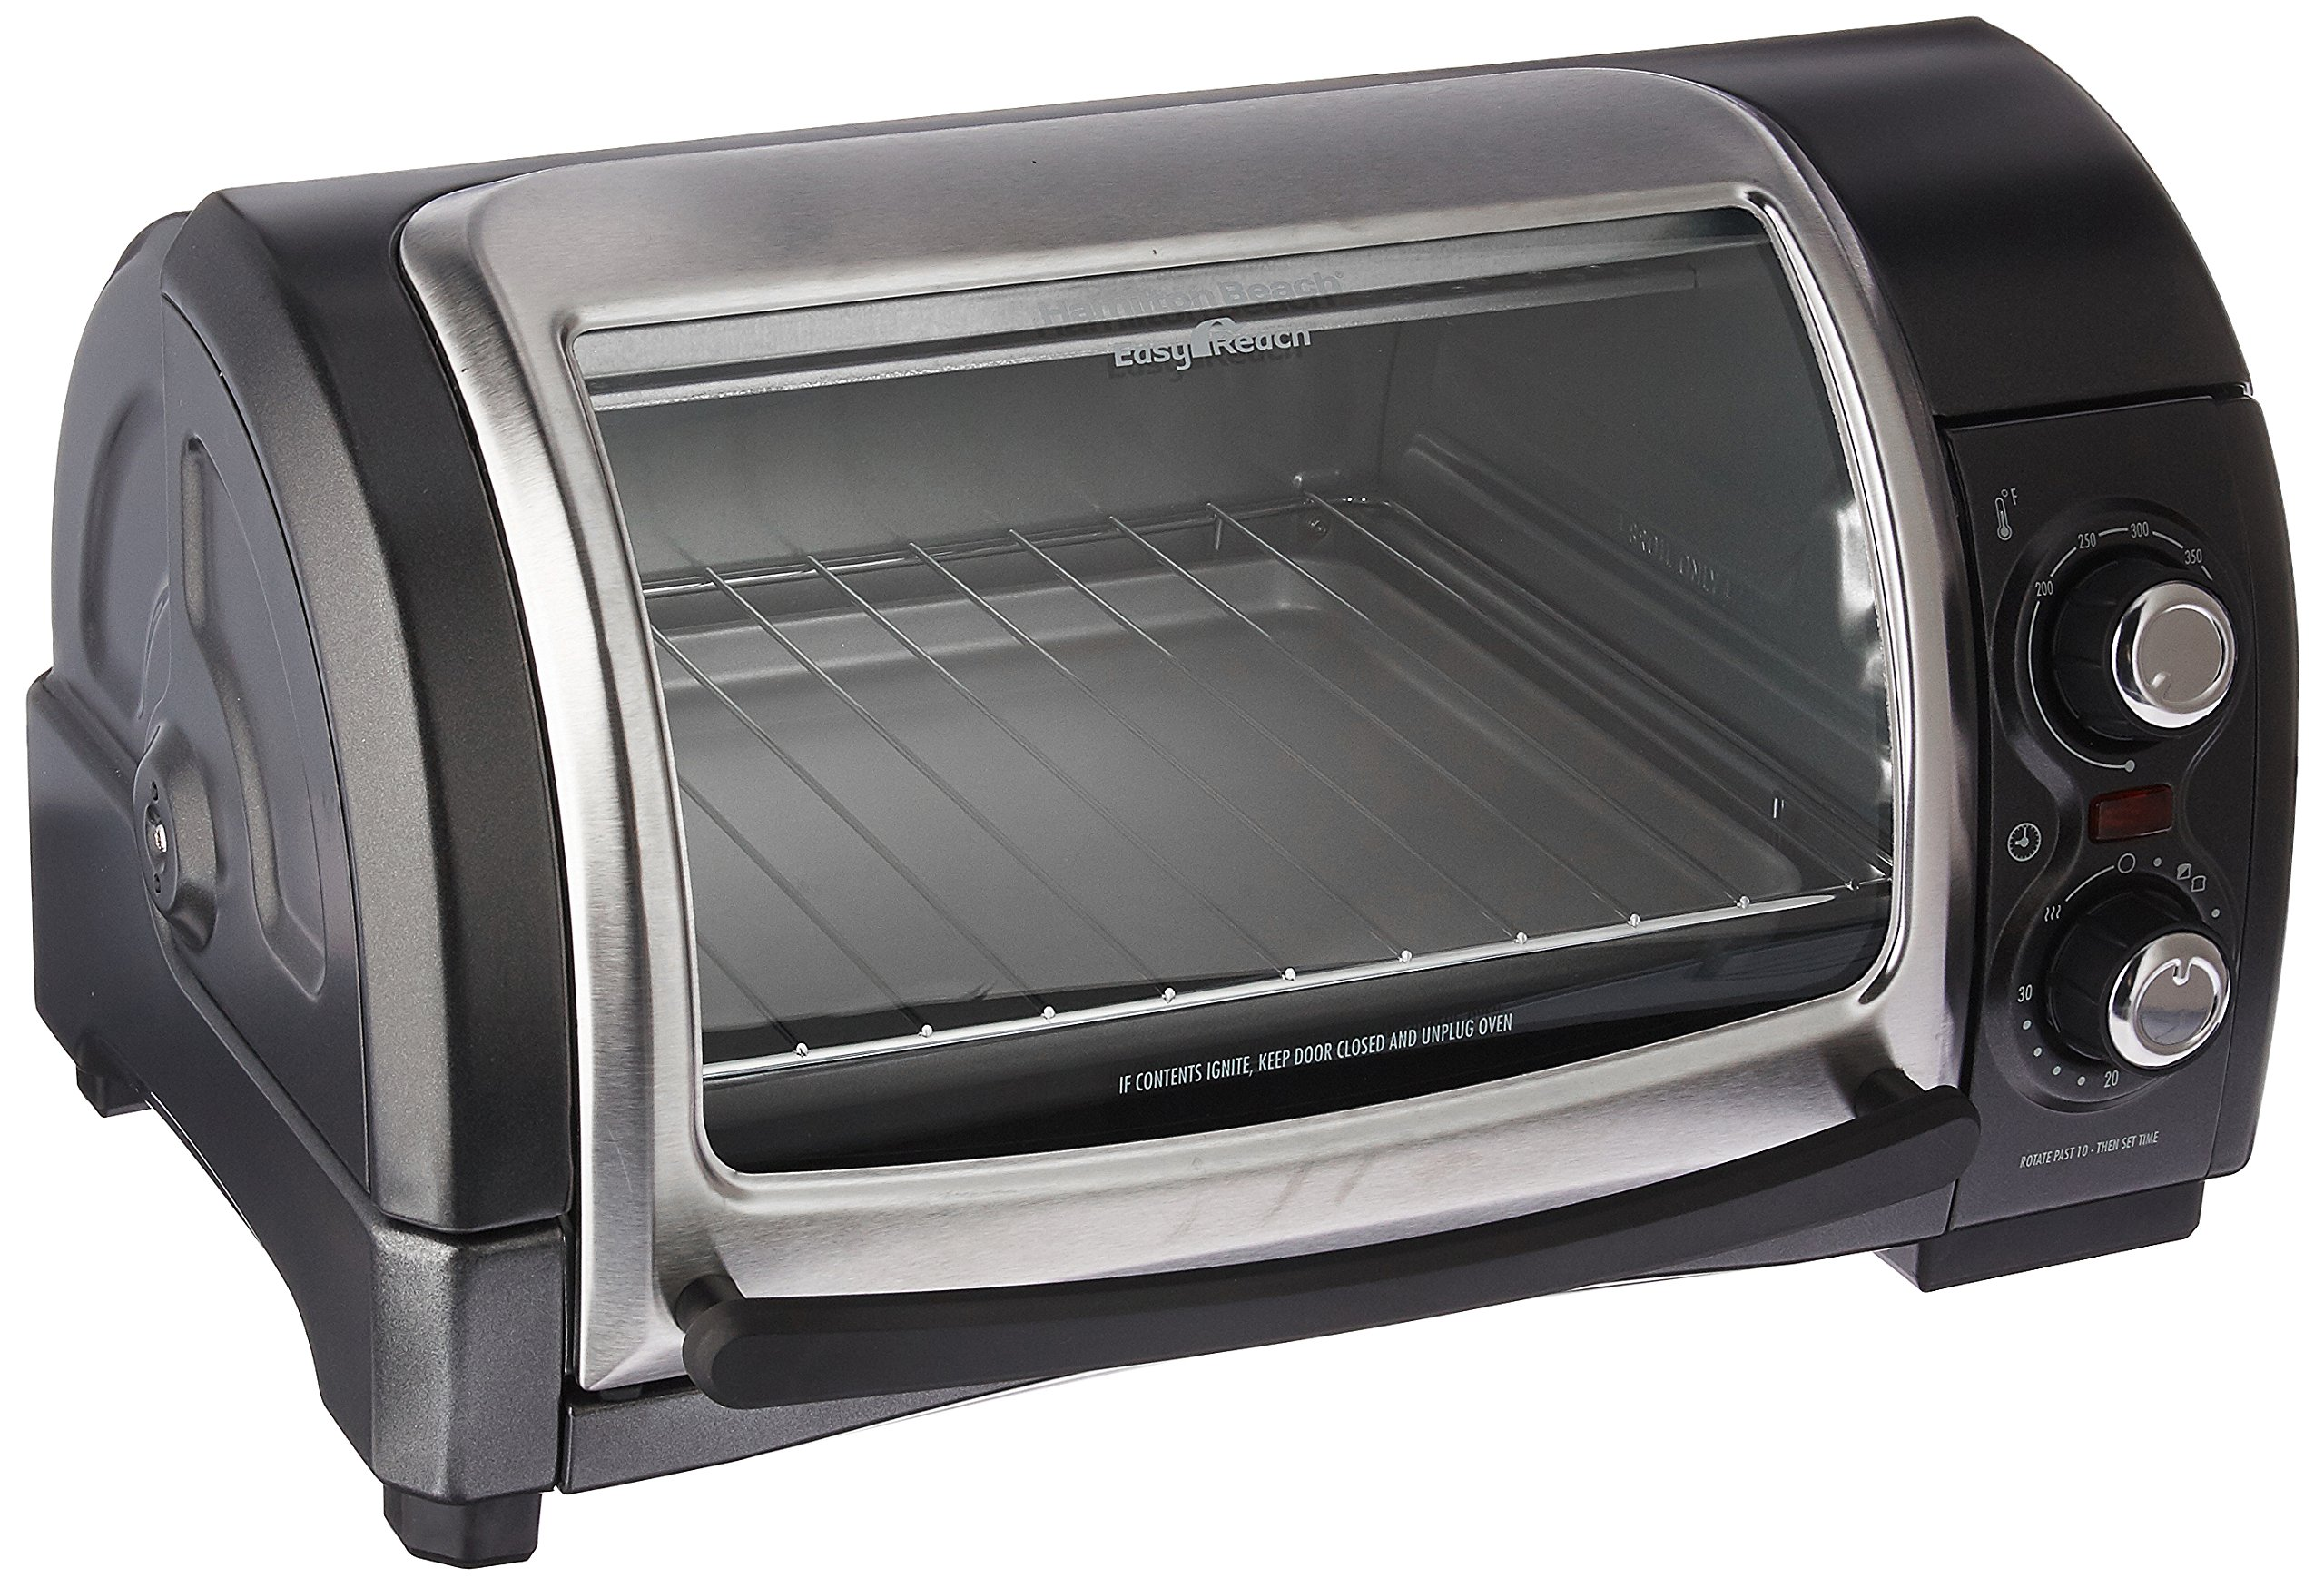 Hamilton Beach (31334) Toaster Oven, Pizza Maker, Electric, Black